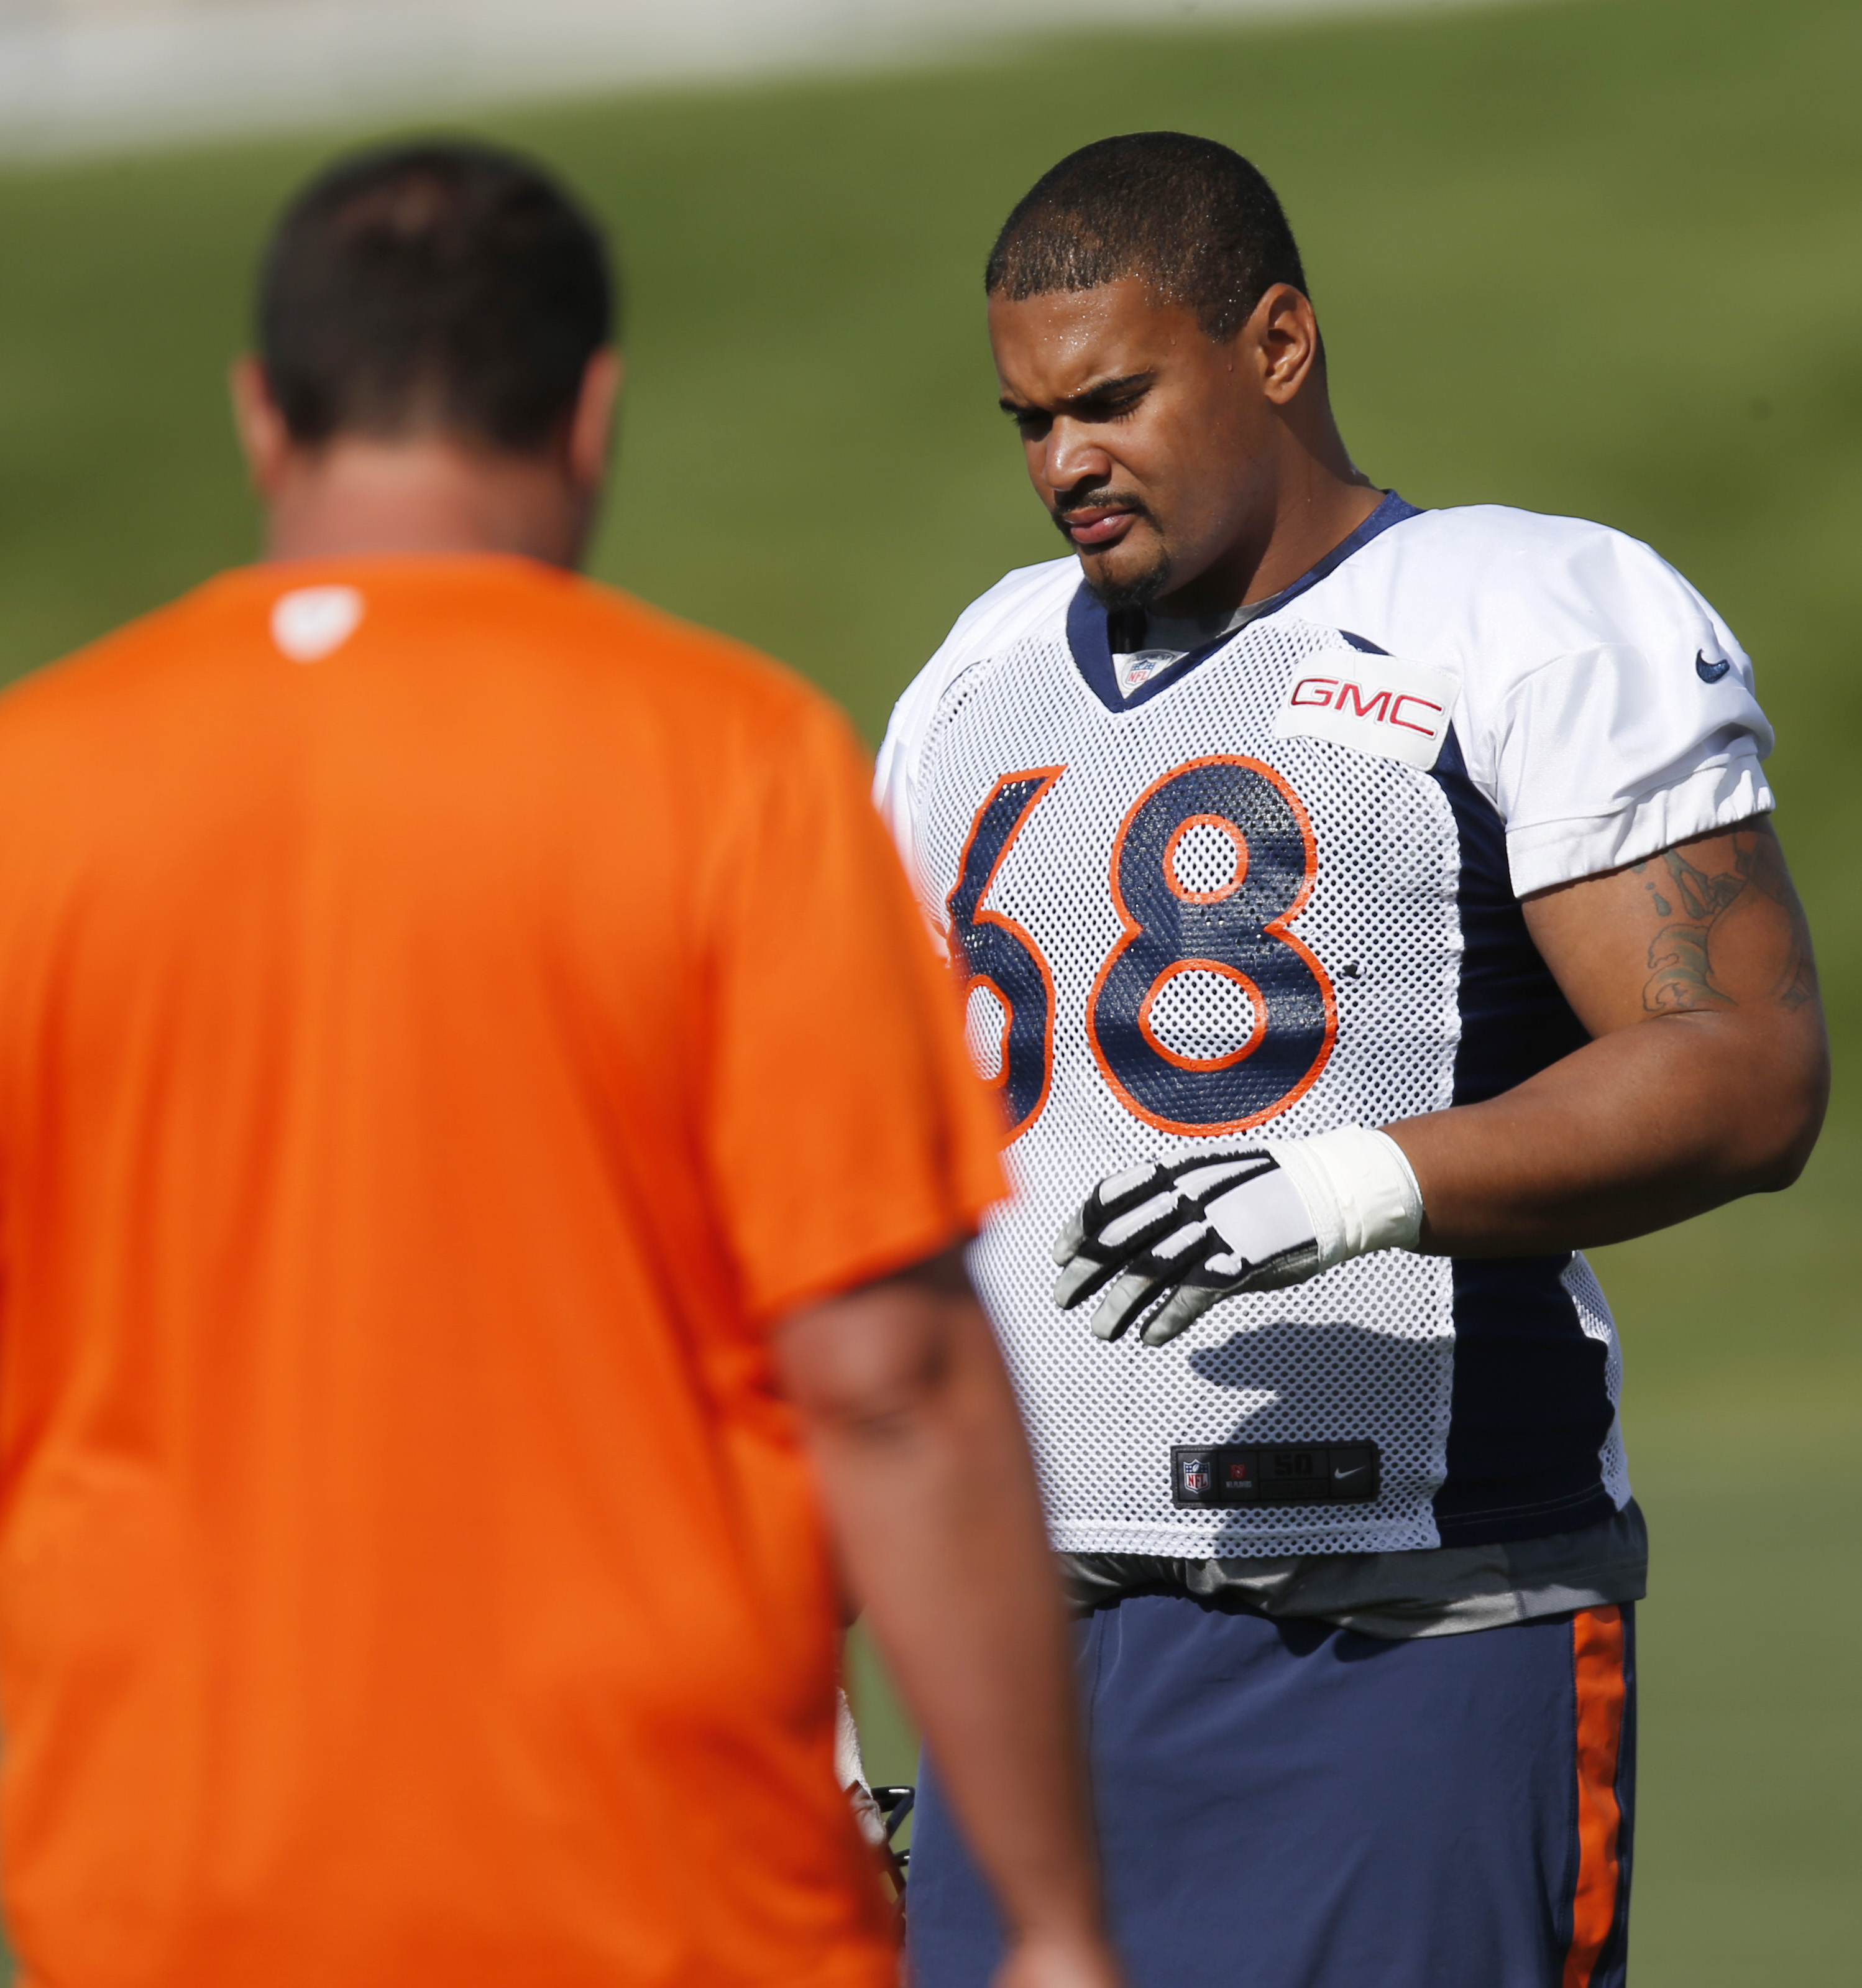 Denver Broncos tackle Ryan Harris takes a break from drills at the team's NFL football training camp Friday, Aug. 7, 2015, in Englewood, Colo. (AP Photo/David Zalubowski)